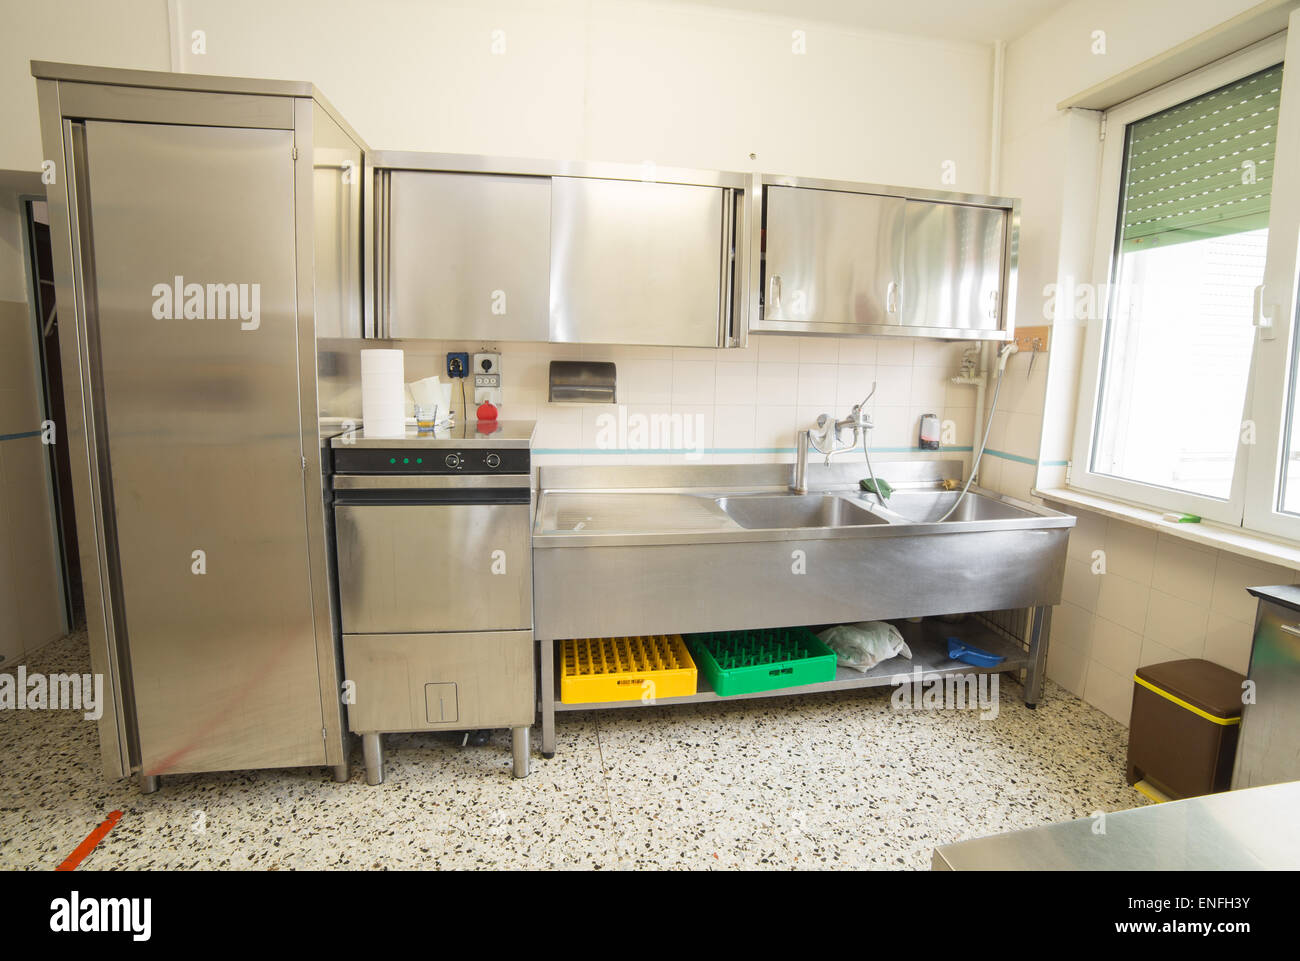 large industrial kitchen with refrigerator, dishwasher and sink all stainless steel Stock Photo